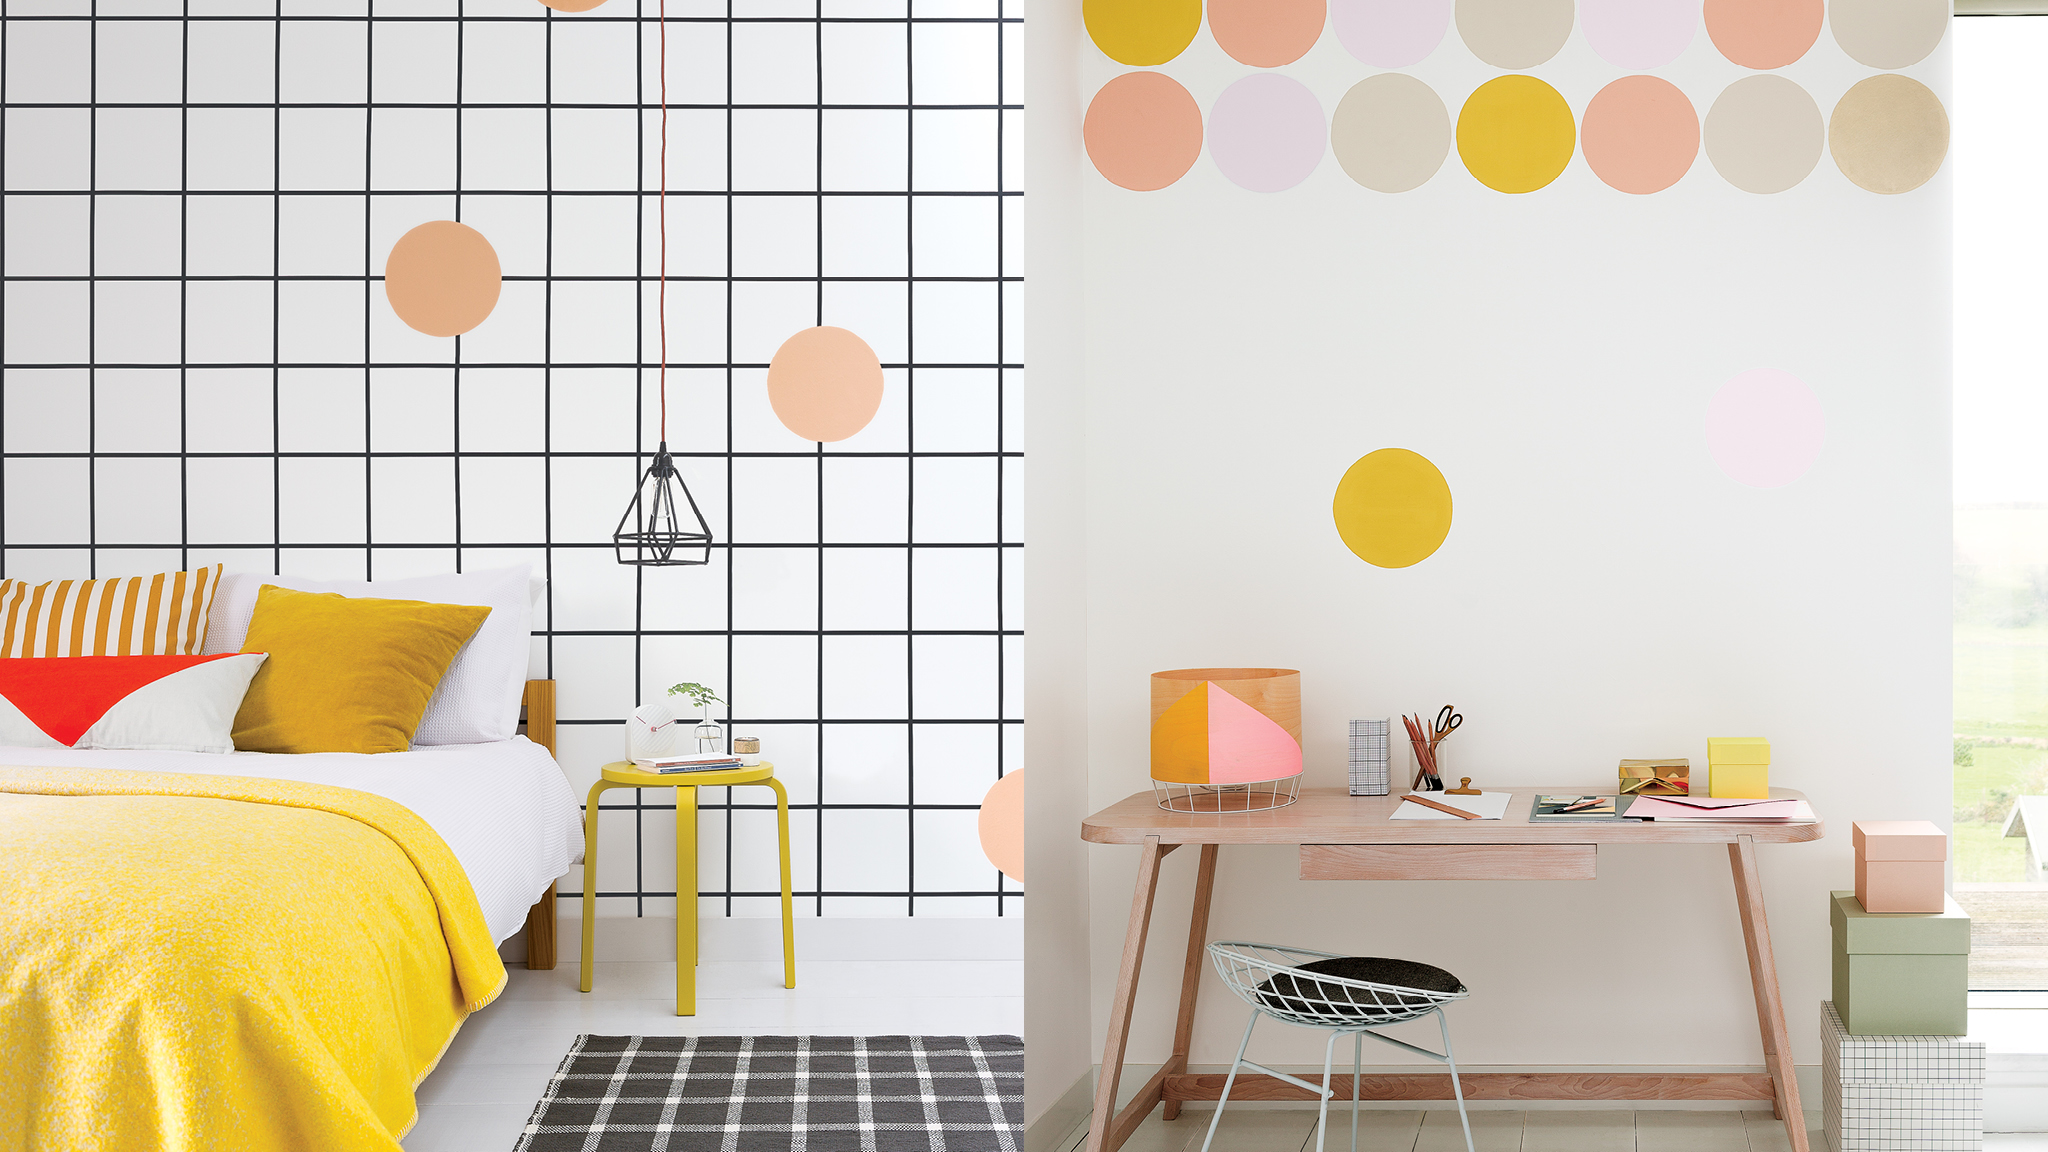 CF 2016 Colour Trend Grid & letting Go